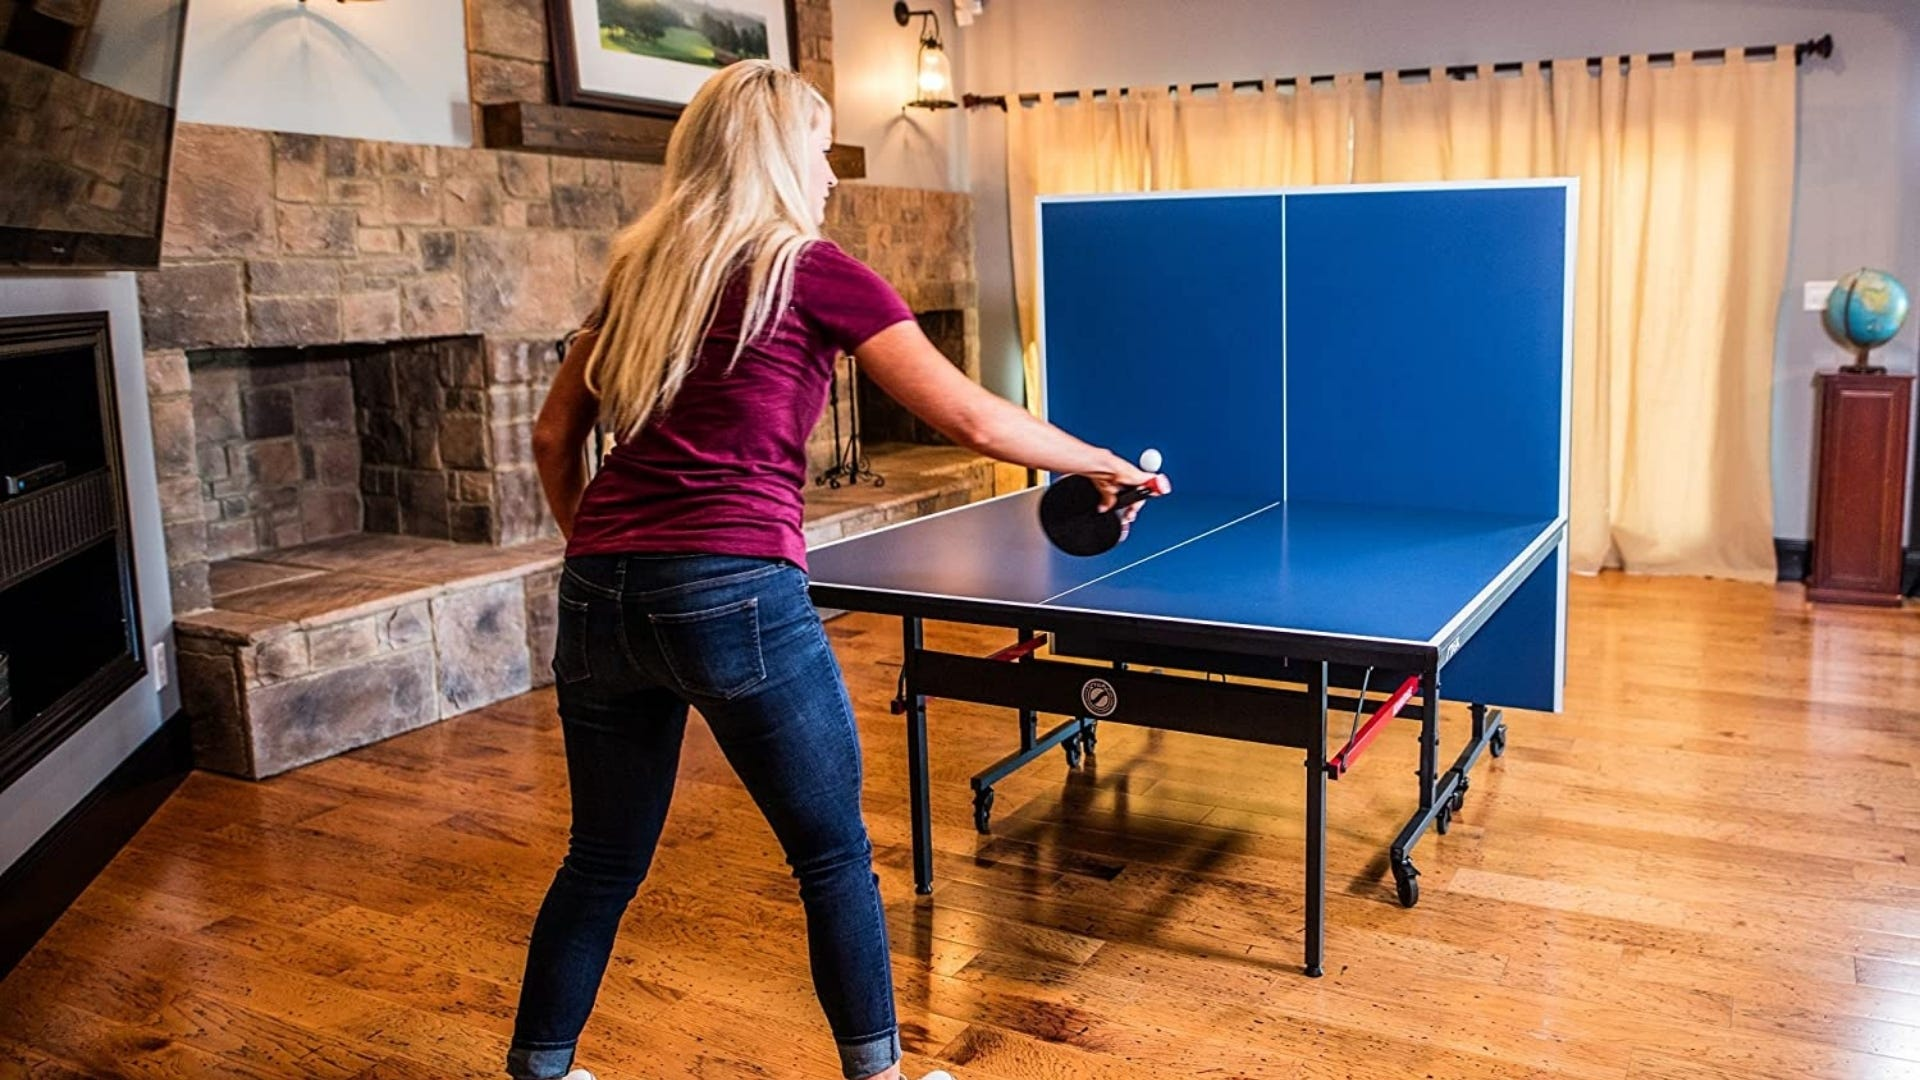 A girl playing ping-pong in a game room.